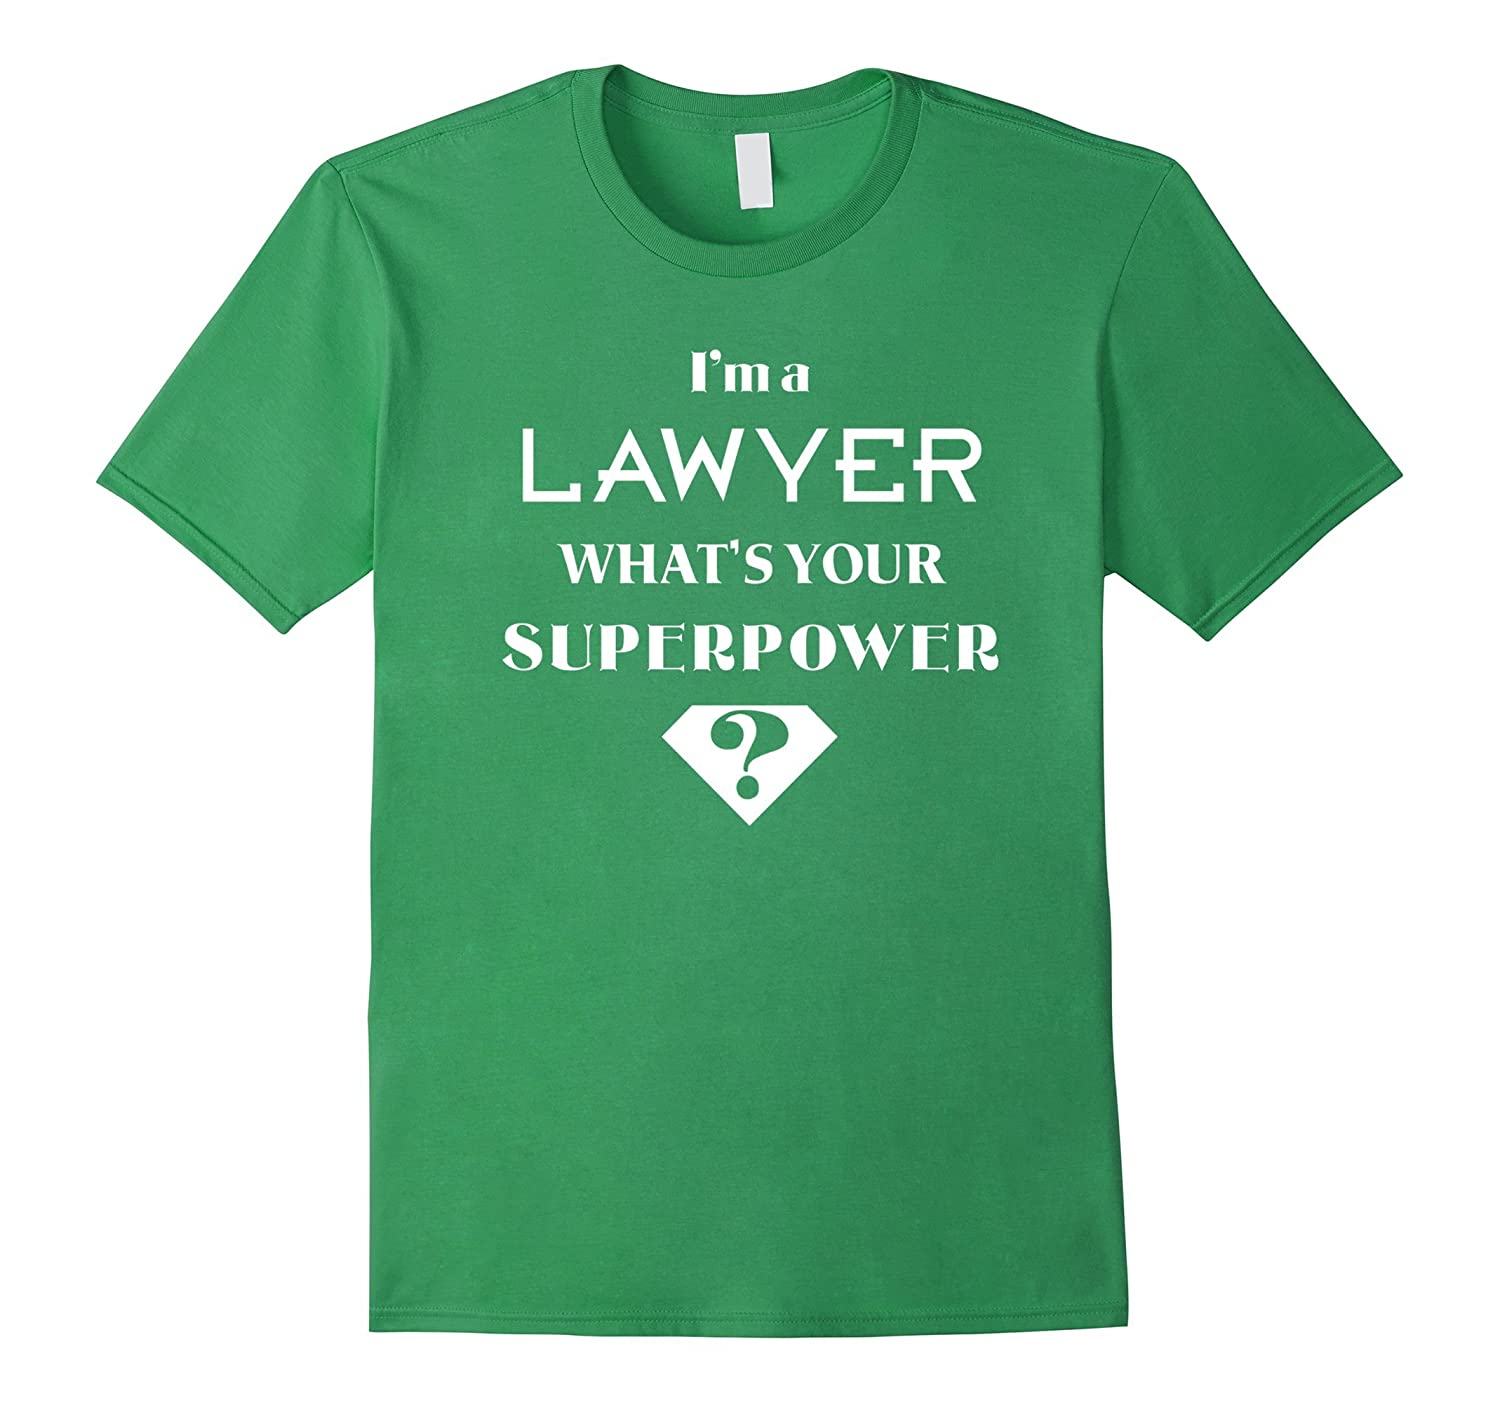 Lawyer - I'm a Lawyer. What's your superpower? T-shirt-Art